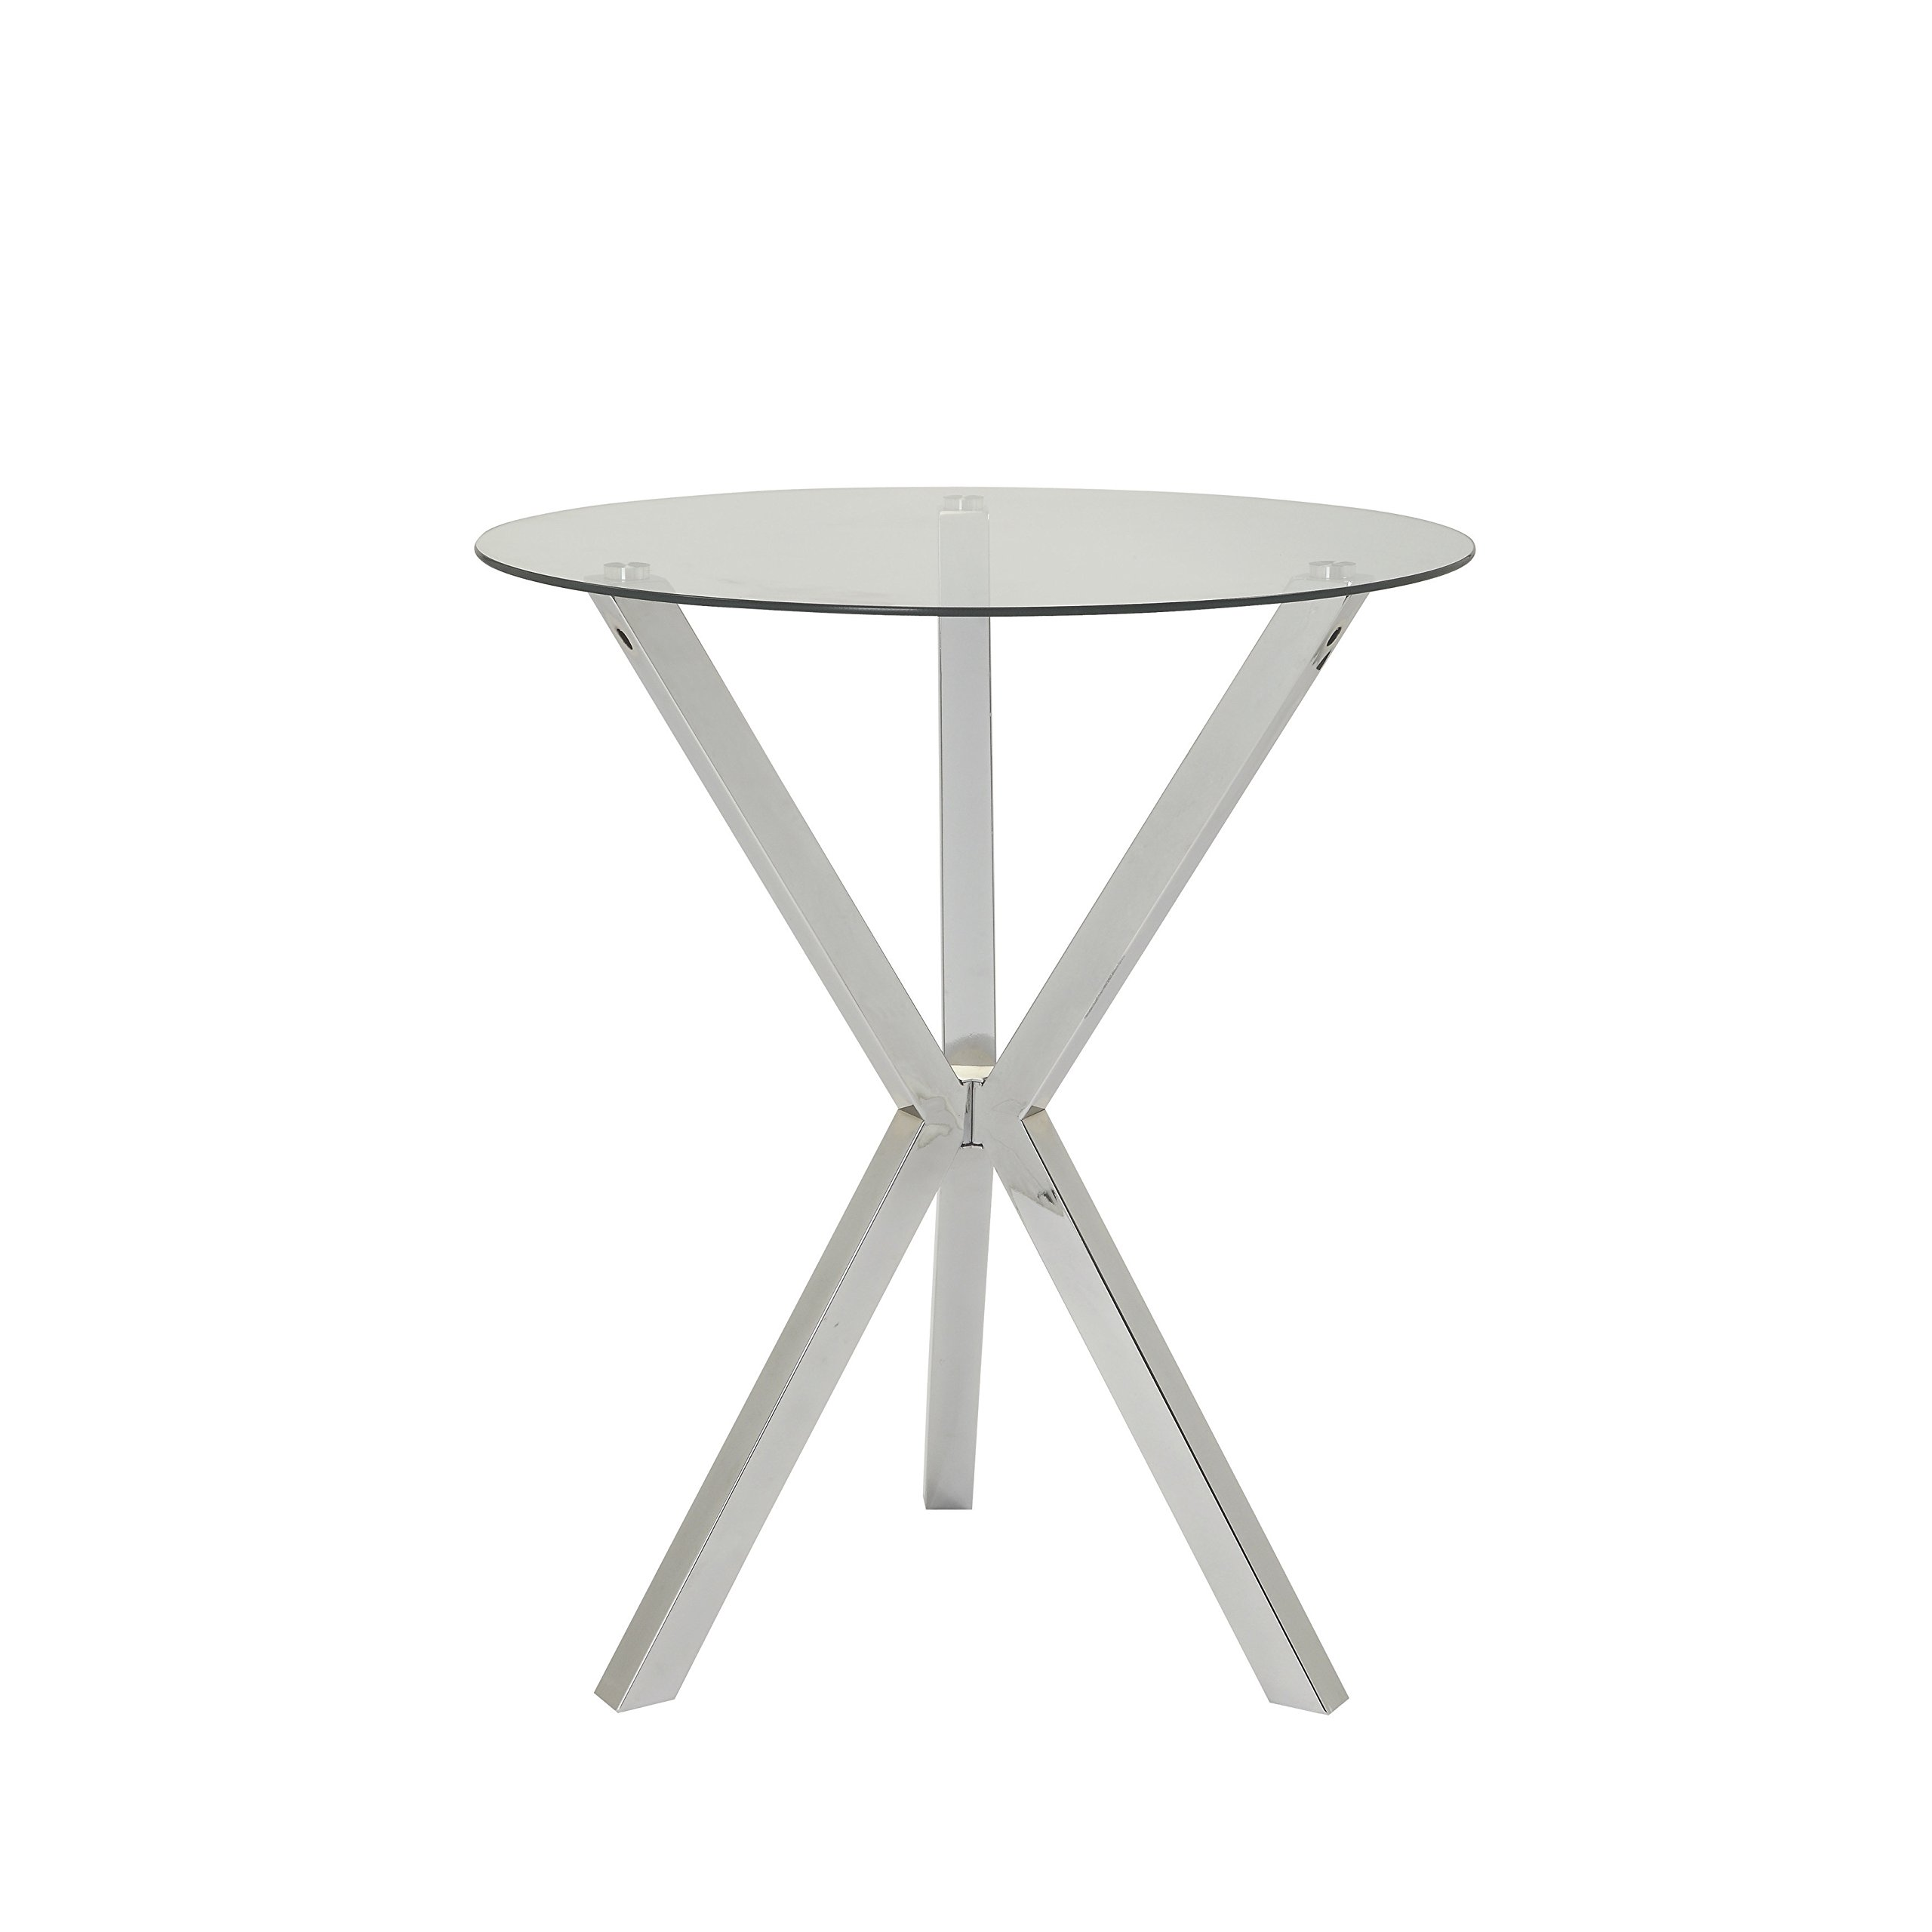 Round Pub Table with Glass Top and X-Shaped Base Chrome and Clear by Coaster Home Furnishings